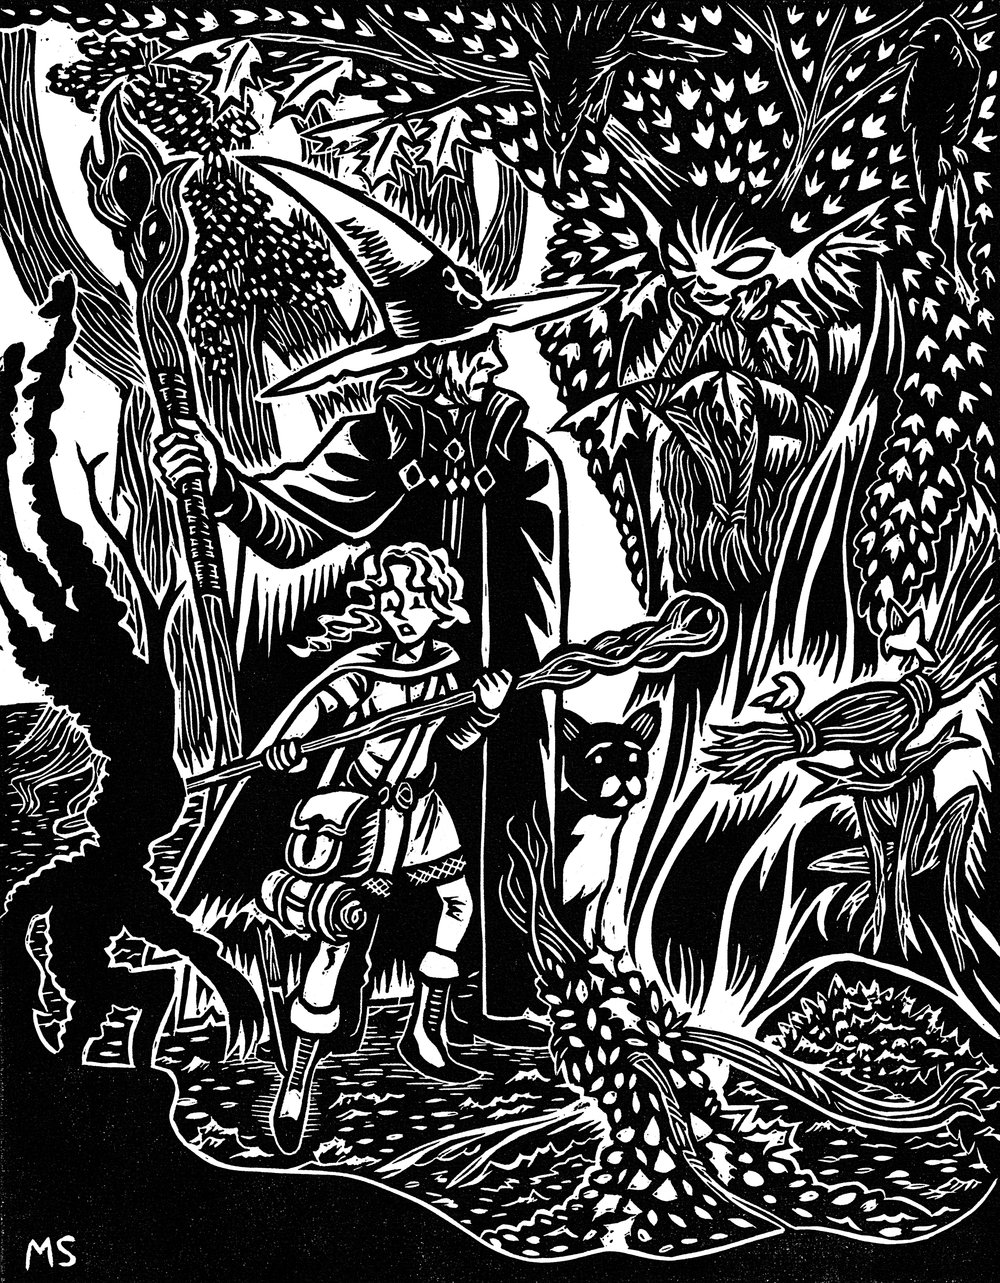 The Wizard, the Apprentice, & the Woods Witch  linocut relief print